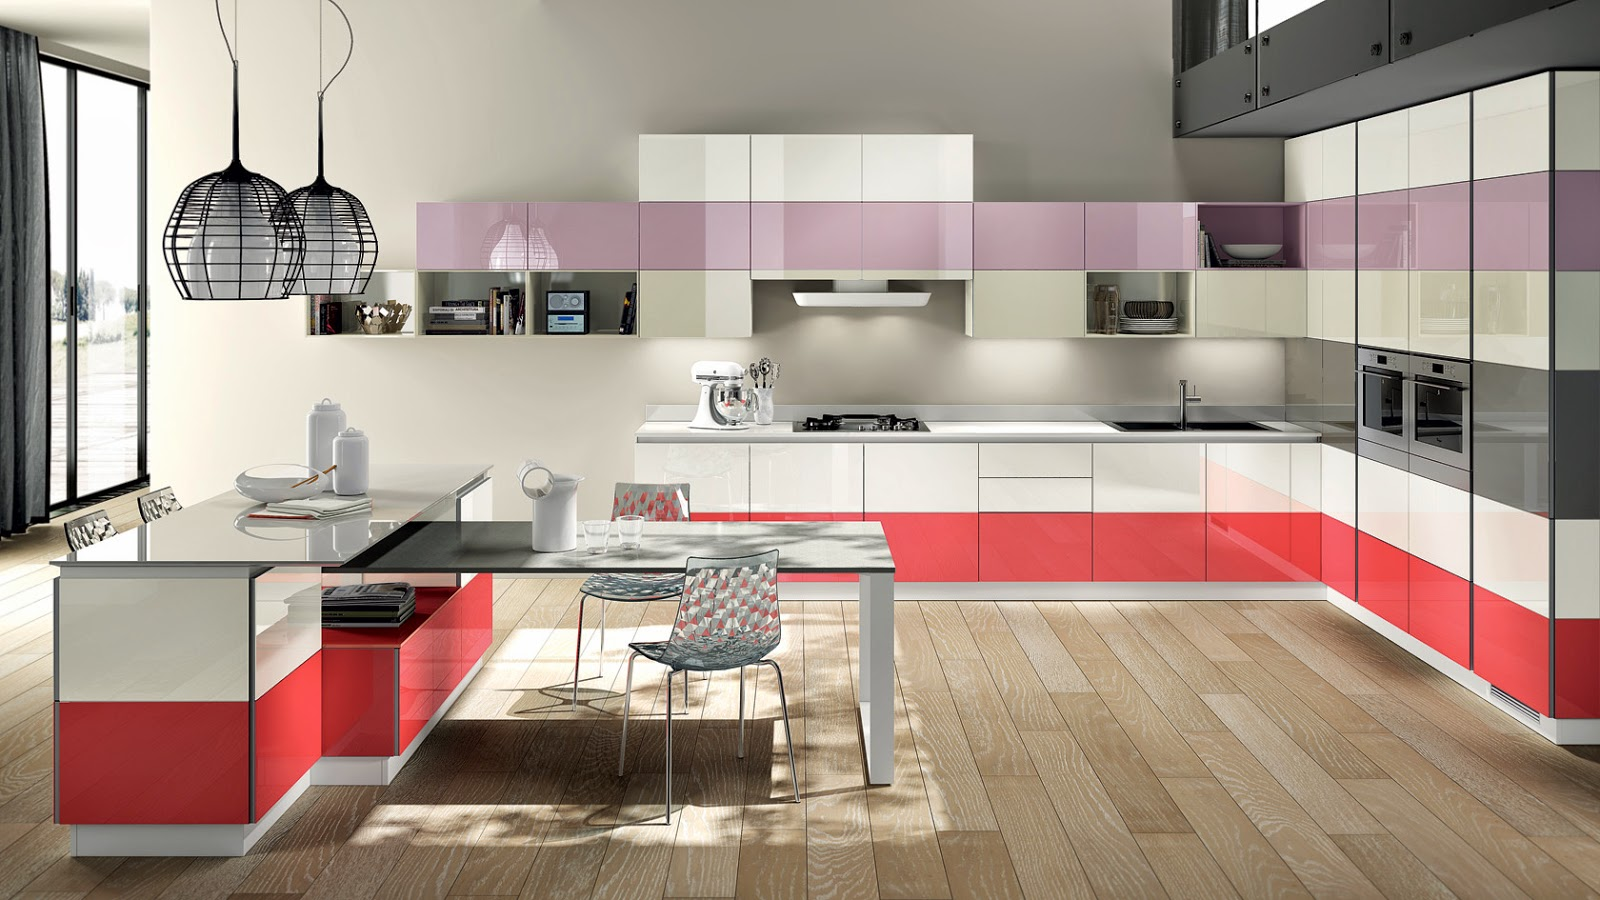 Modular Kitchens in Bangalore Italian modular kitchens from Scavolini